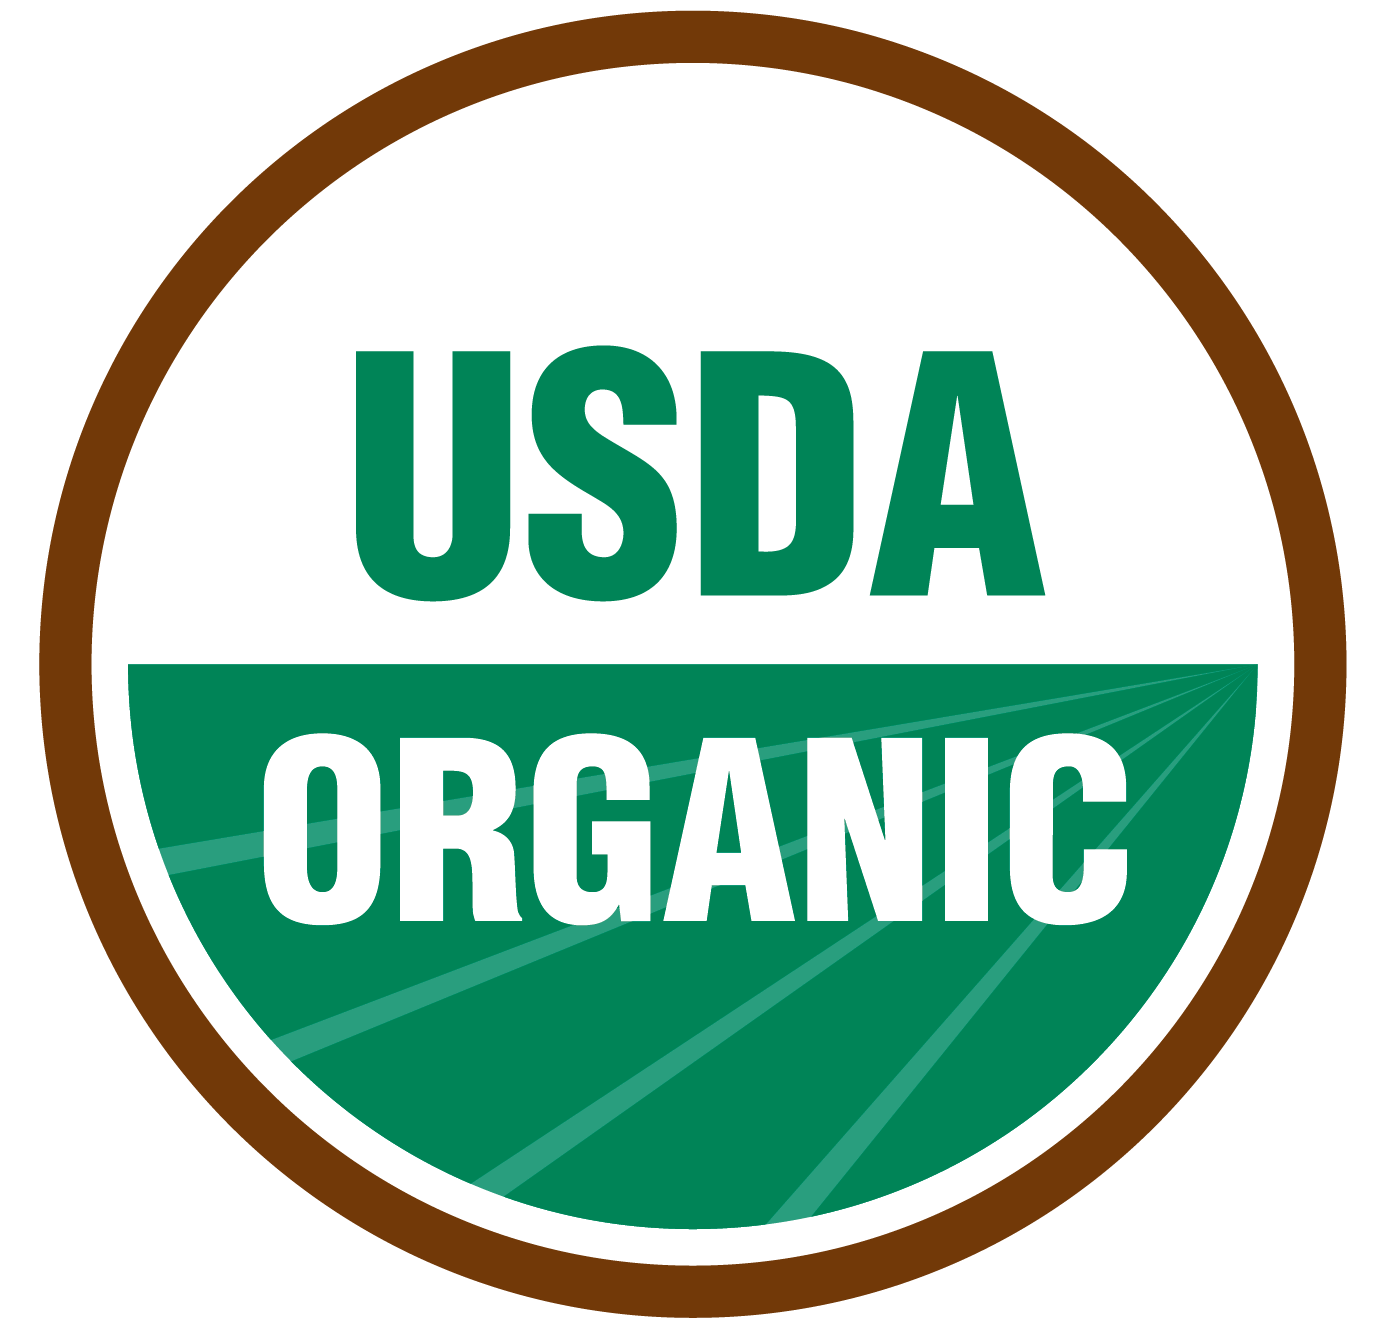 USDA Organic Badge - RE Botanicals